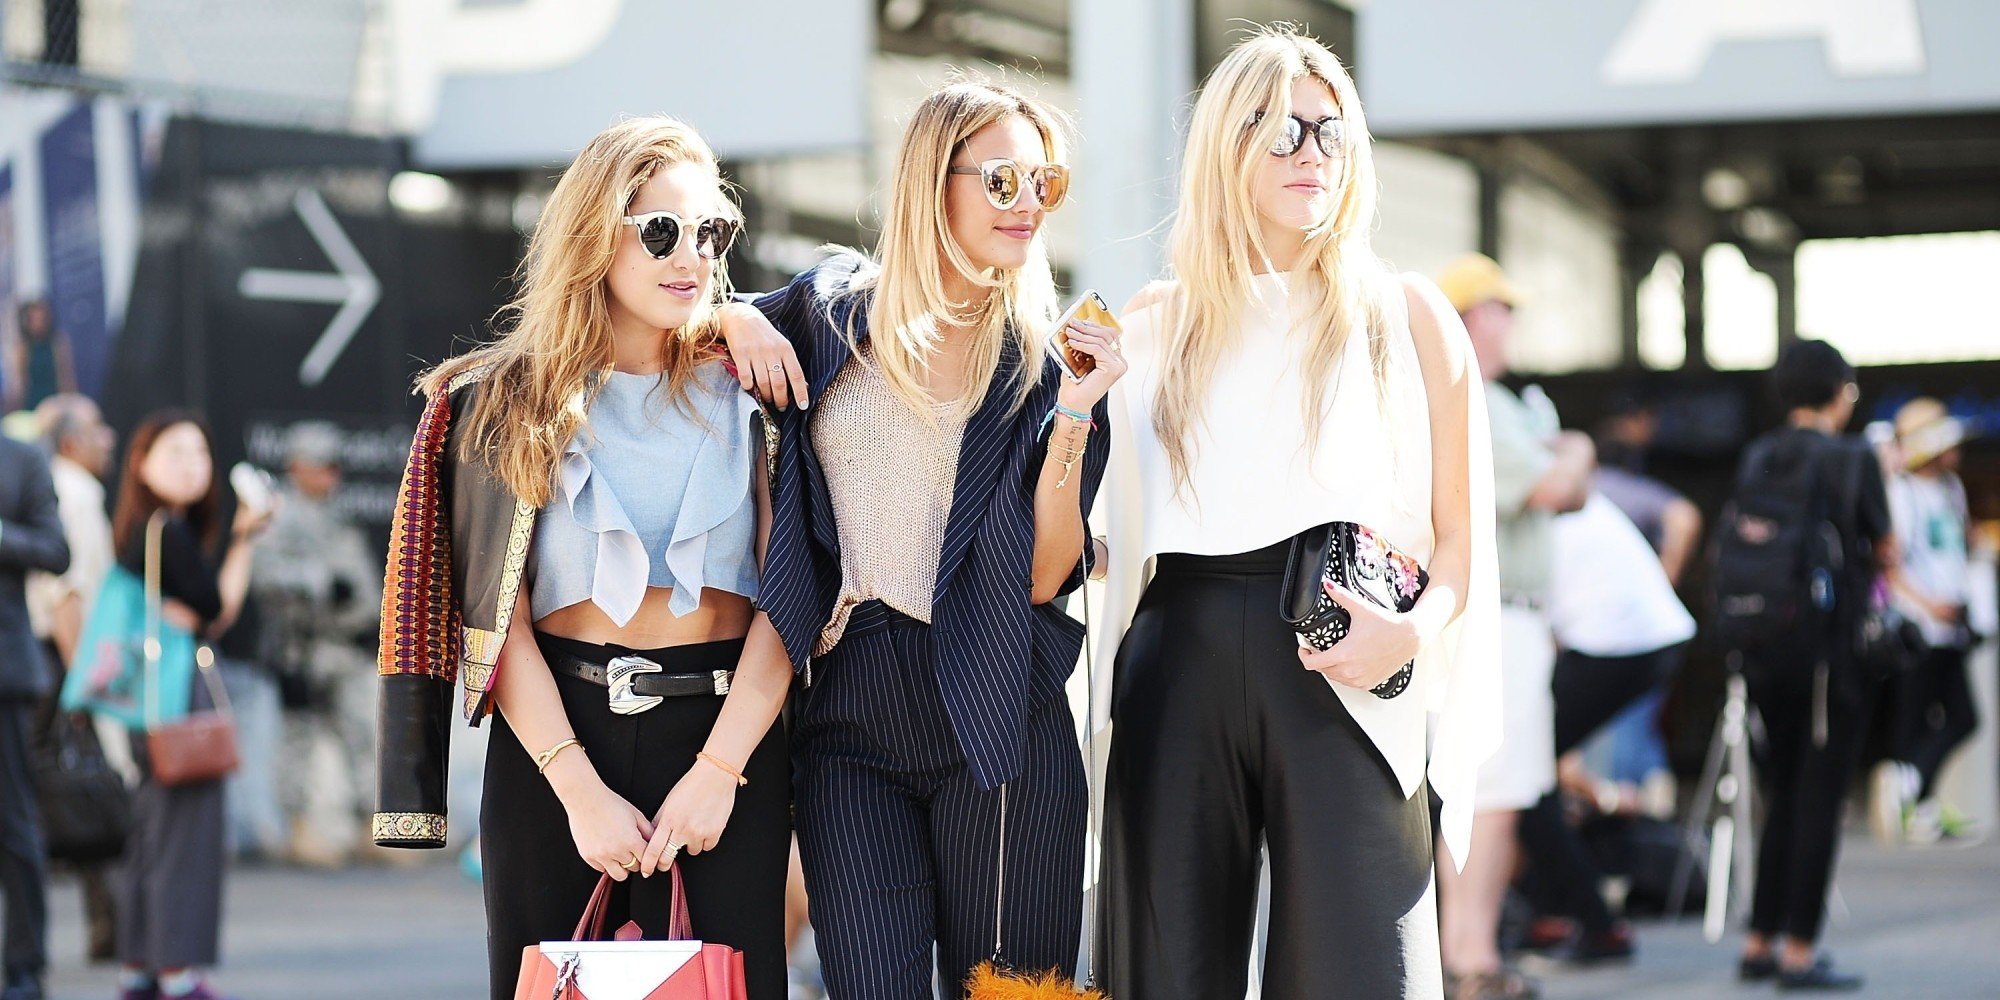 The Fall 2015 Fashion Trends You Can Actually Wear